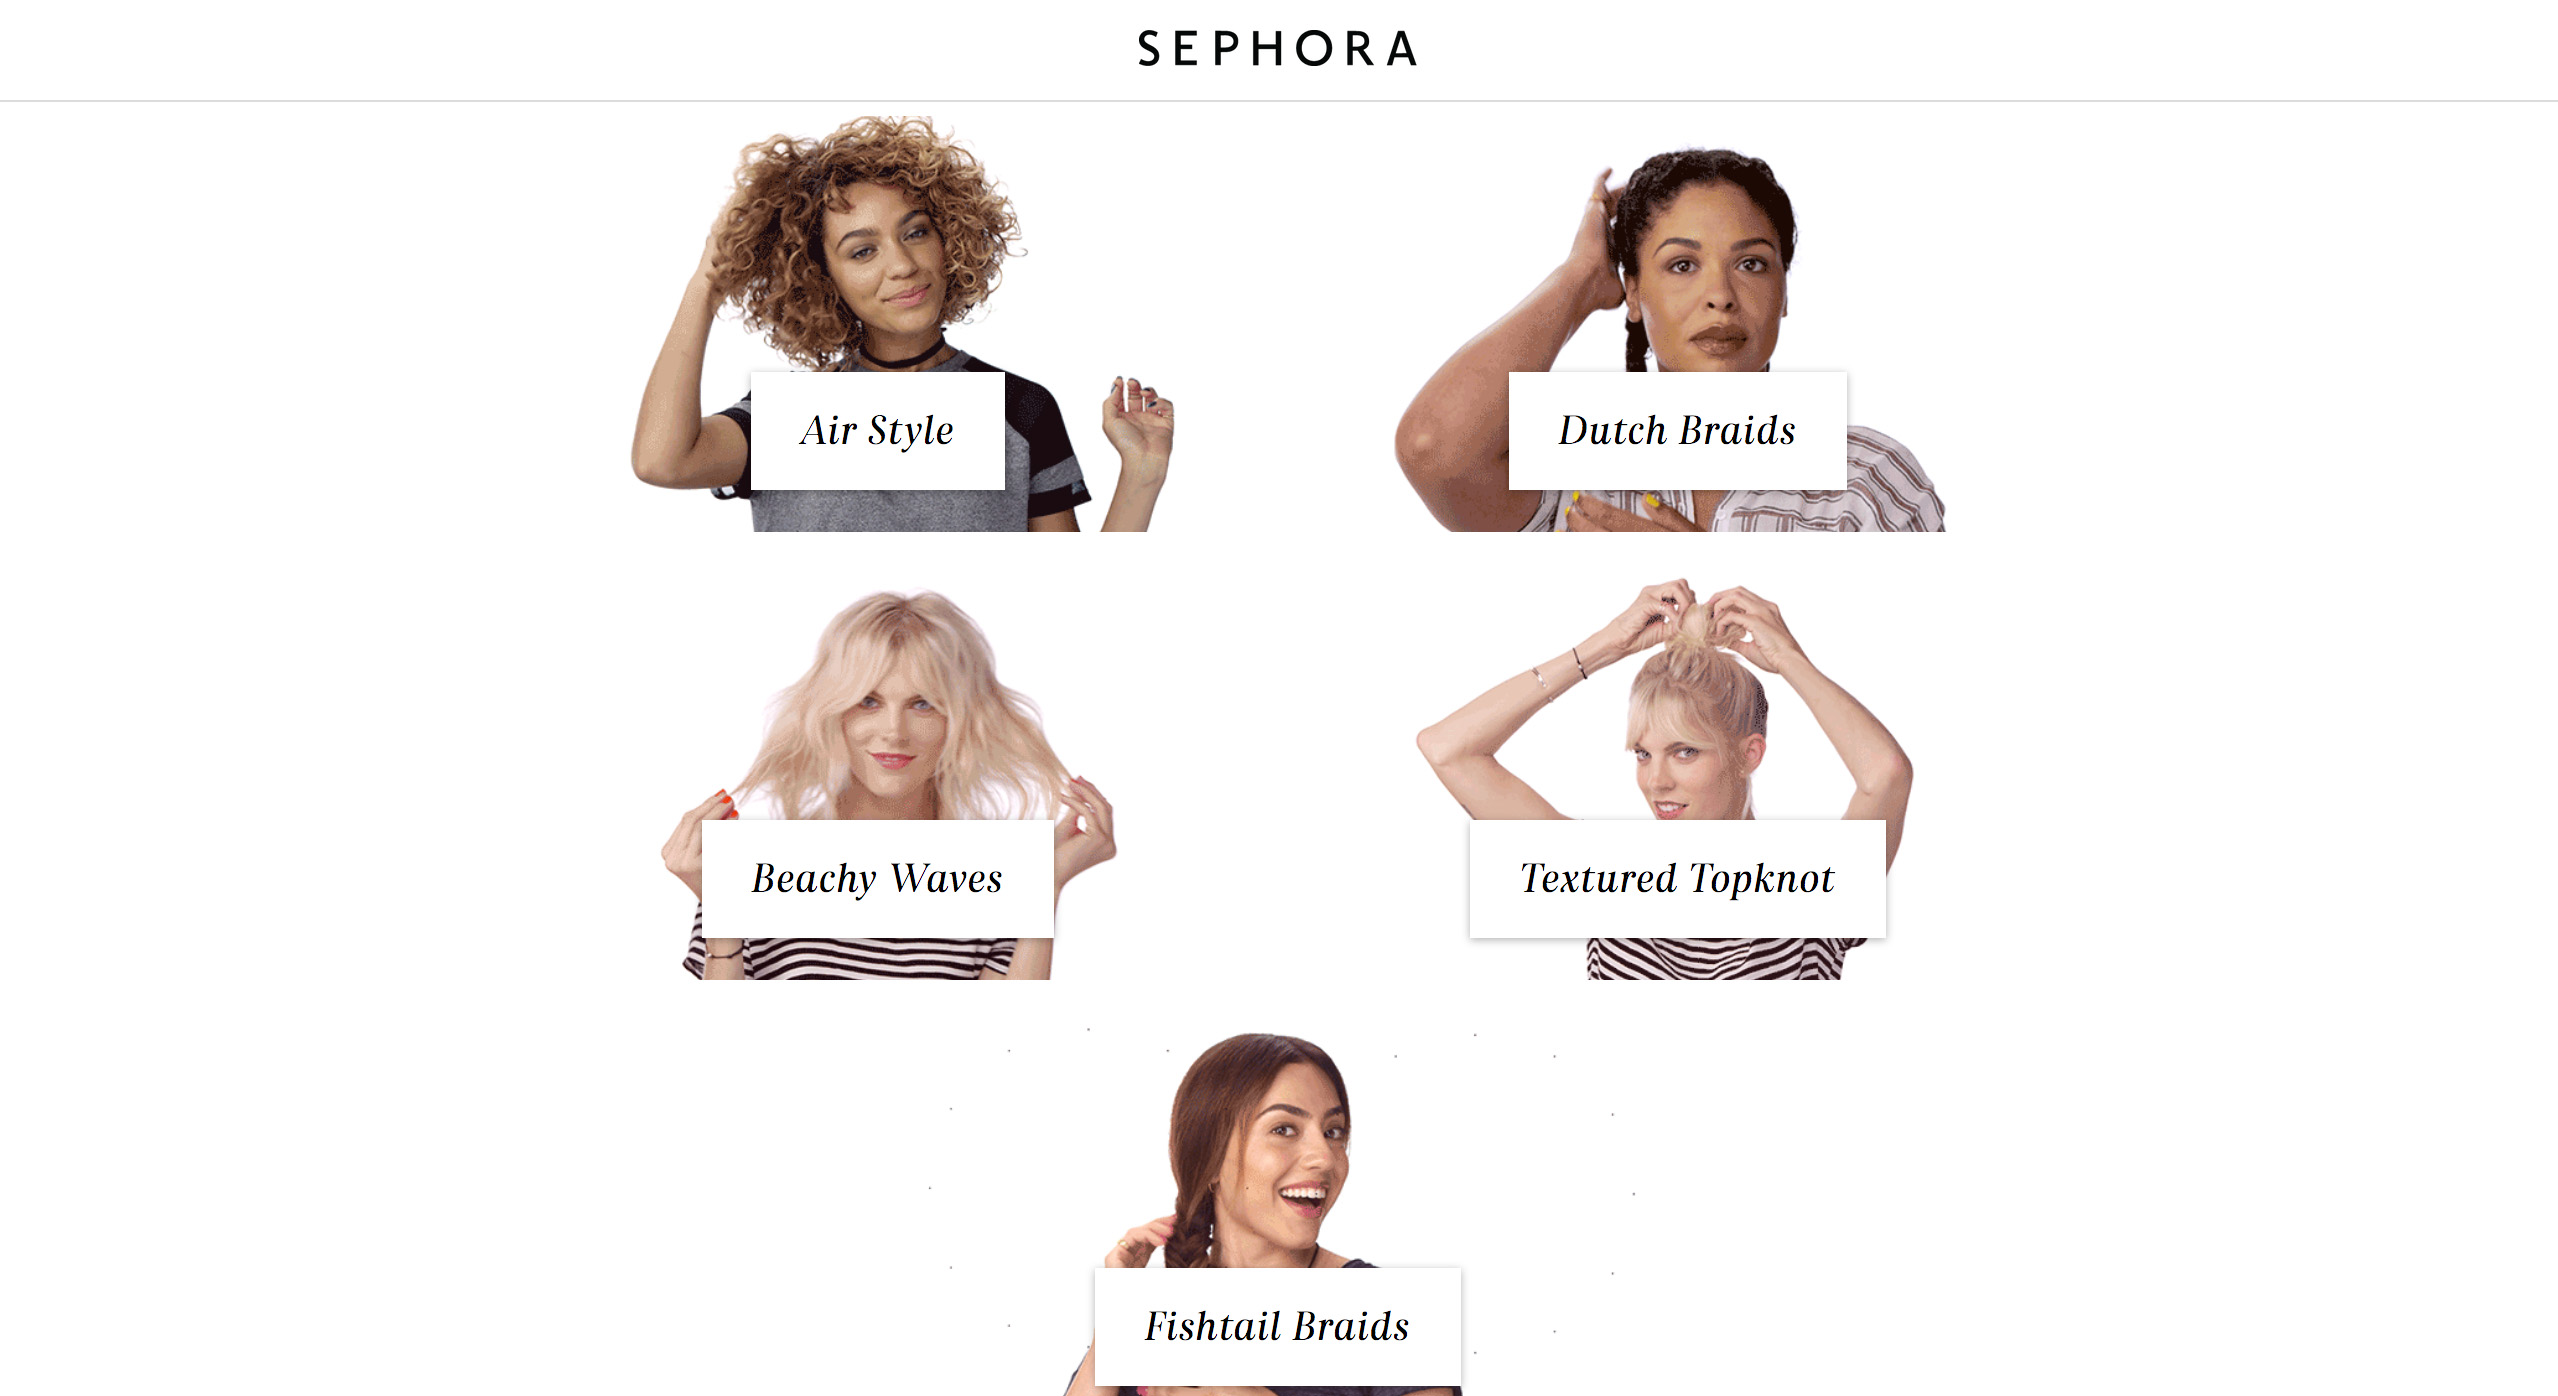 Sephora Adds Android App And New Pocket Hair Stylist Tool To Its Award-Winning Mobile Platforms